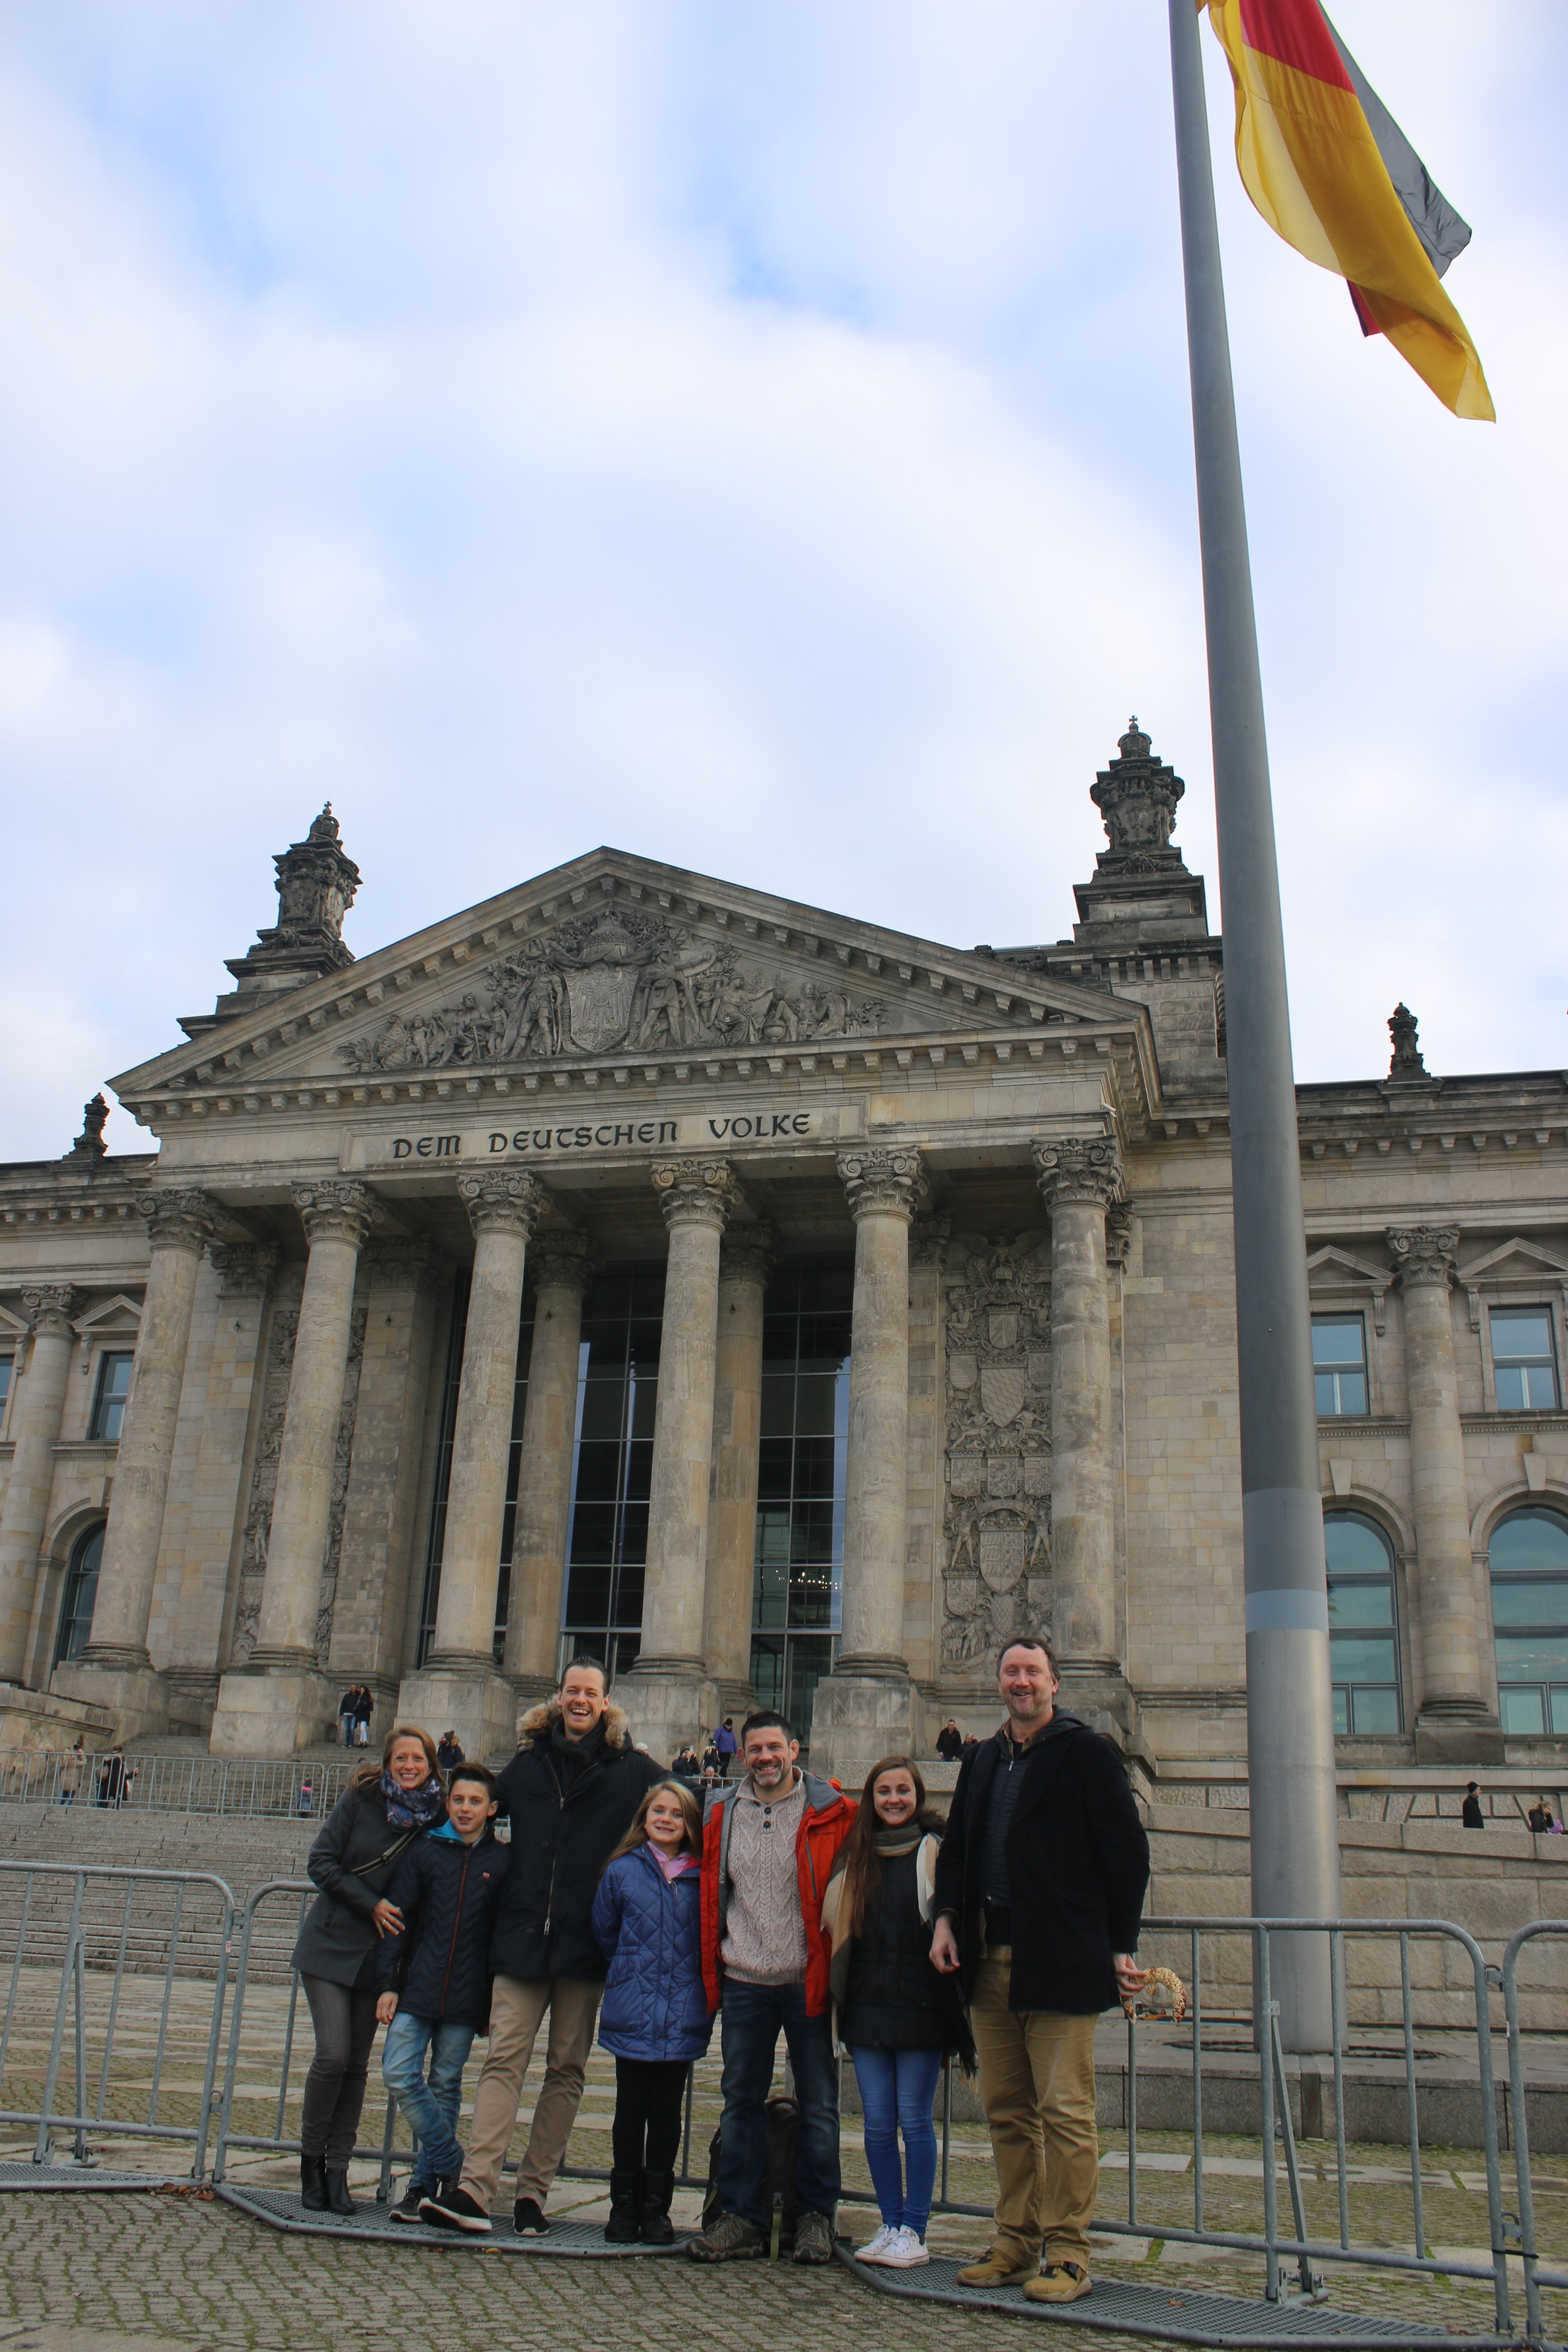 Group photo in front of the Reichstag building